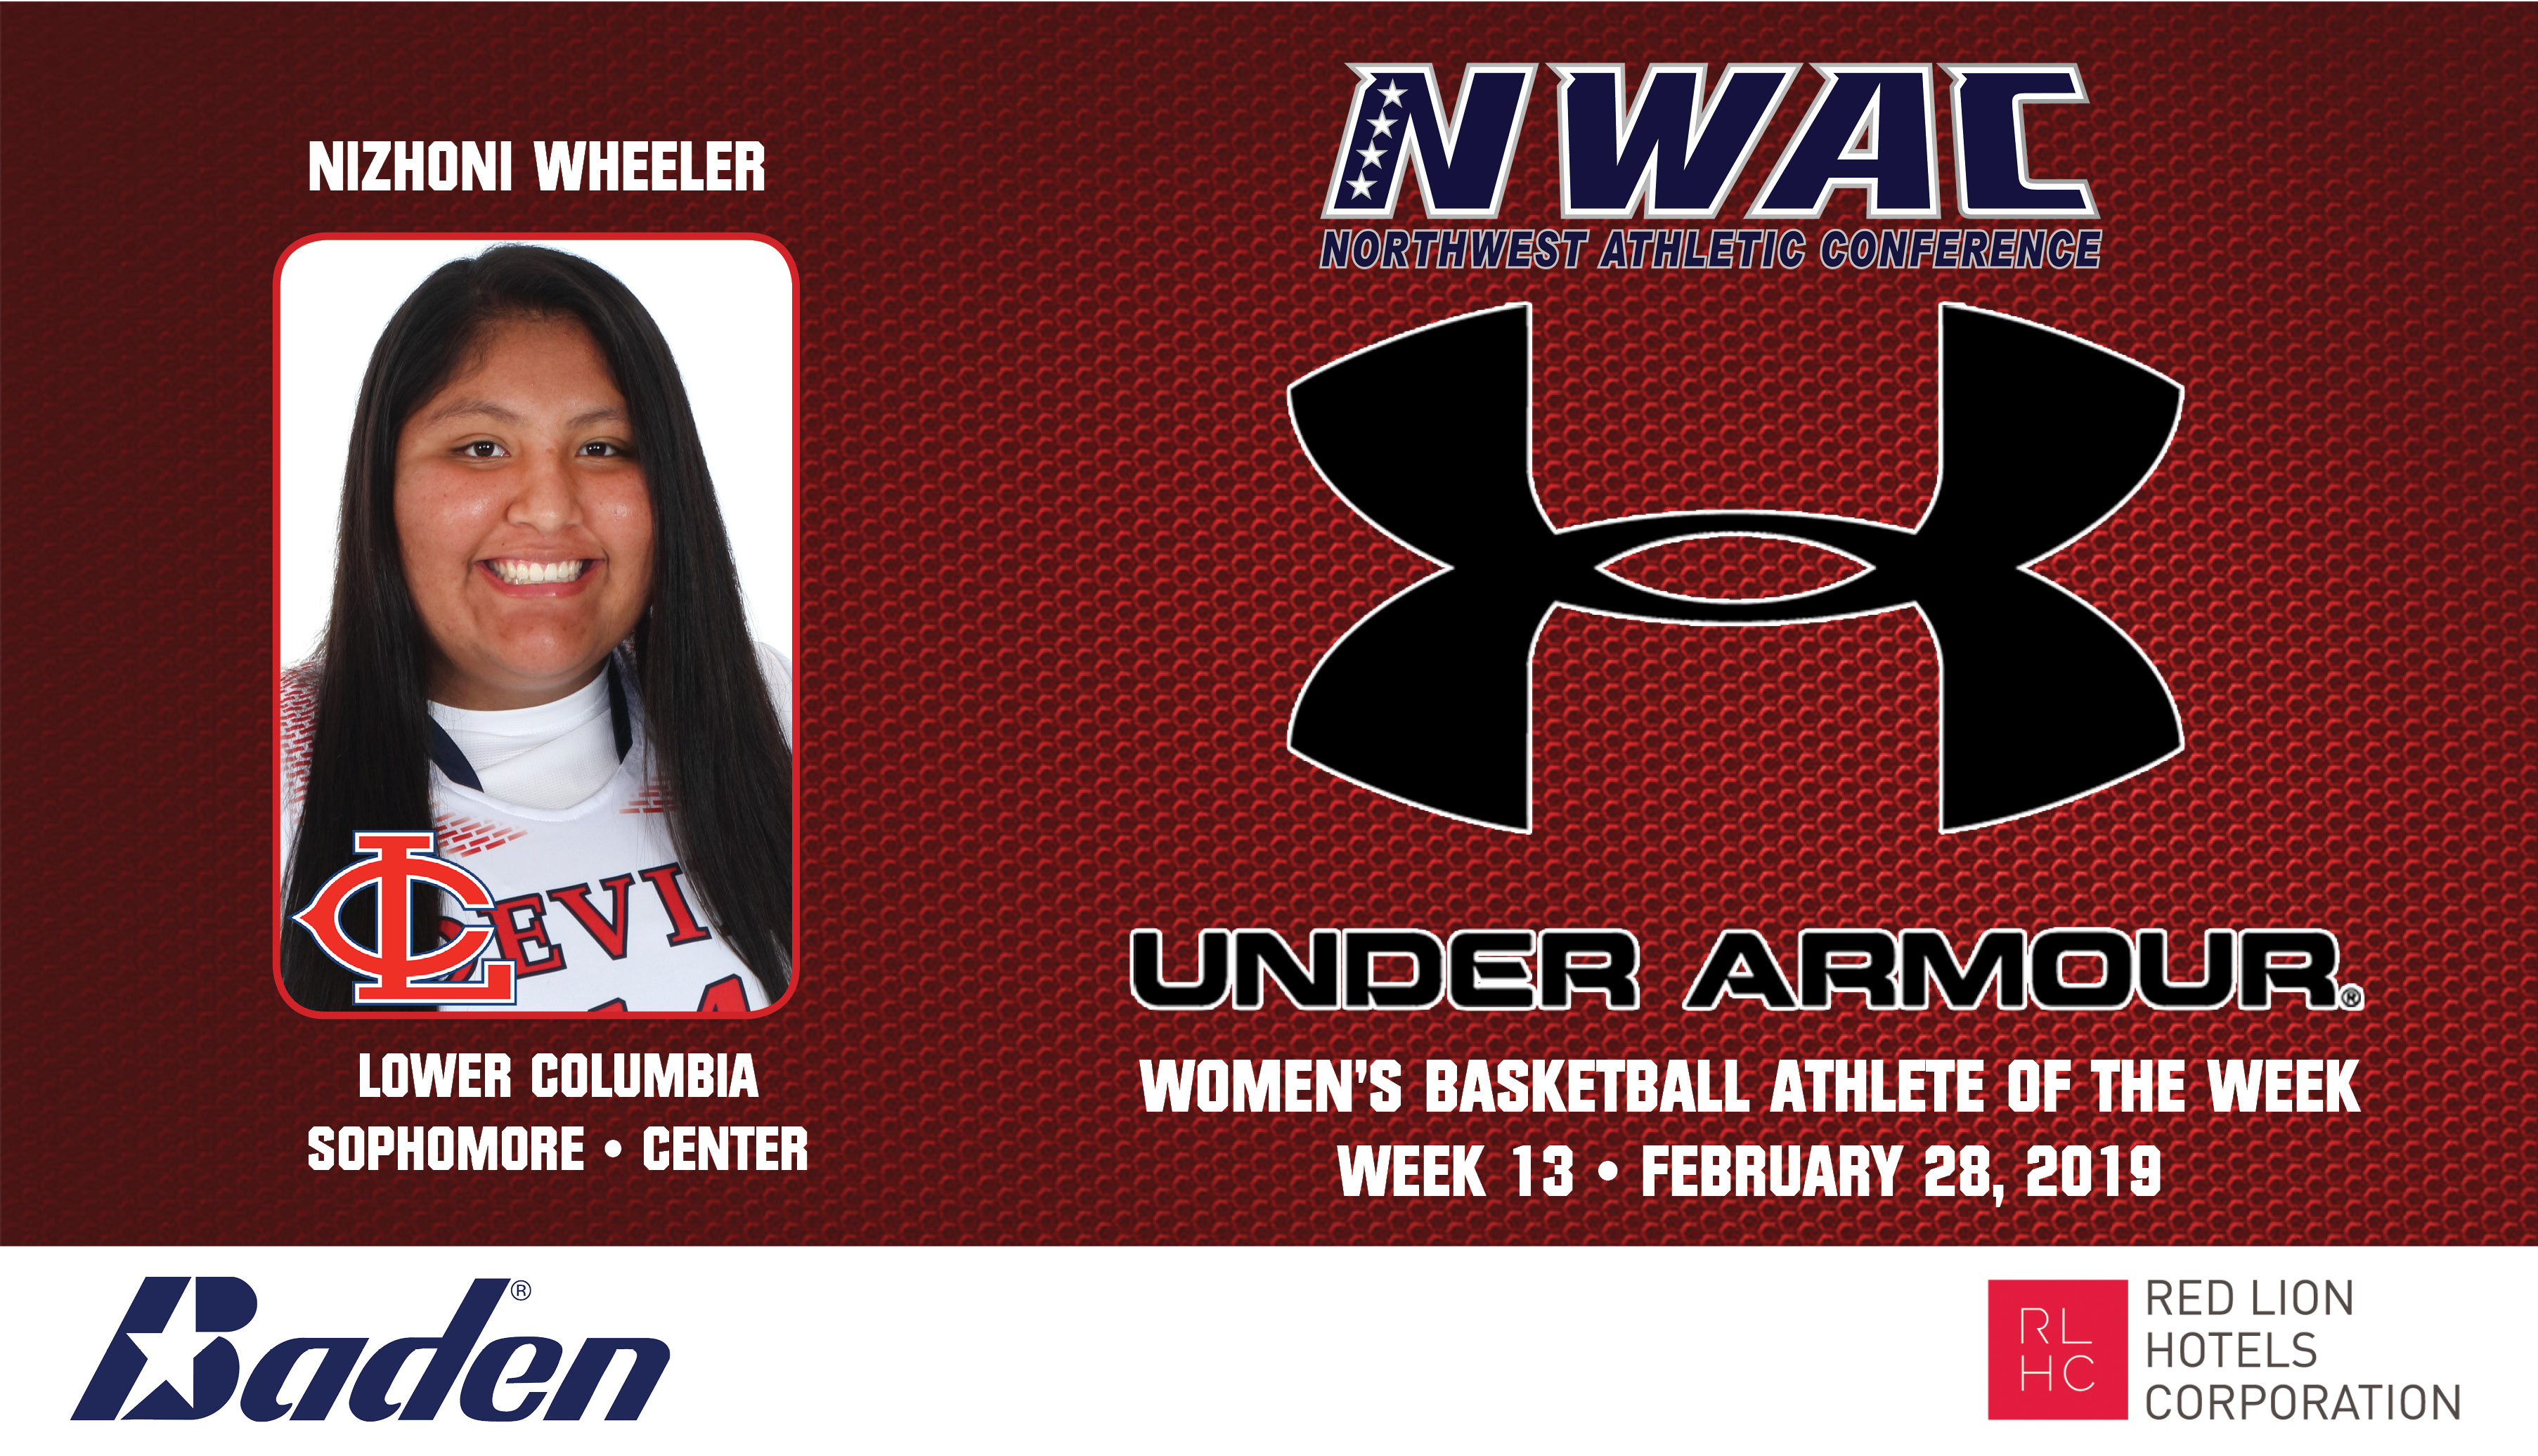 Nizhoni Wheeler Under Armour photo